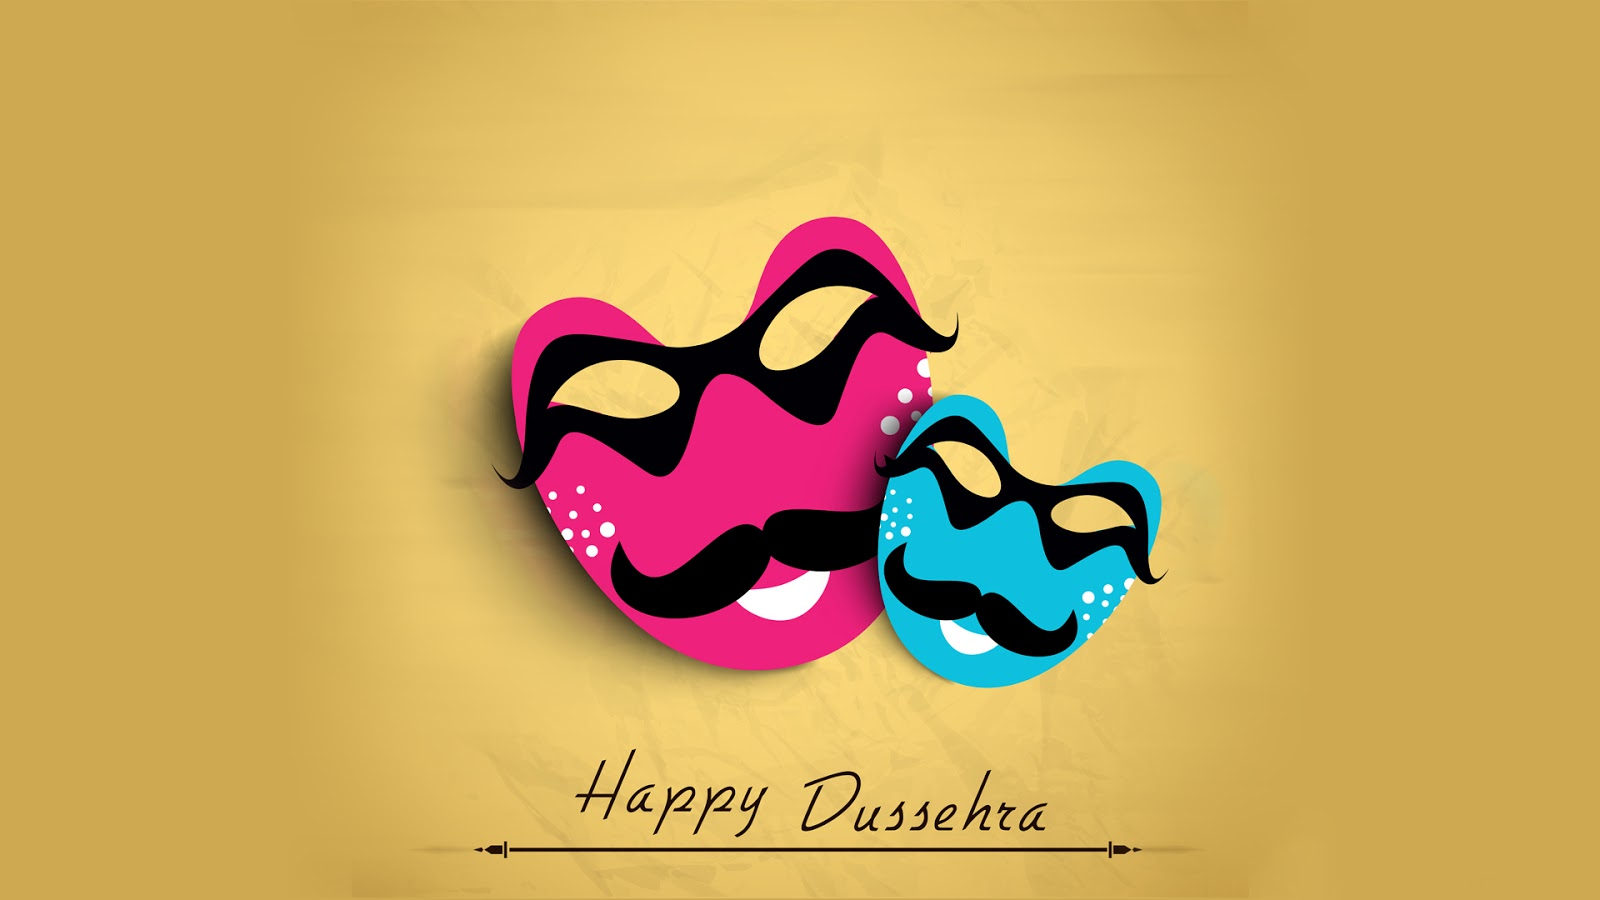 Happy dussehra pictures happy new year 2017 you guys would be looking for dussehra 2015 messages sms wishes greetings for facebook and whatsapp status you can go through the messages kristyandbryce Choice Image